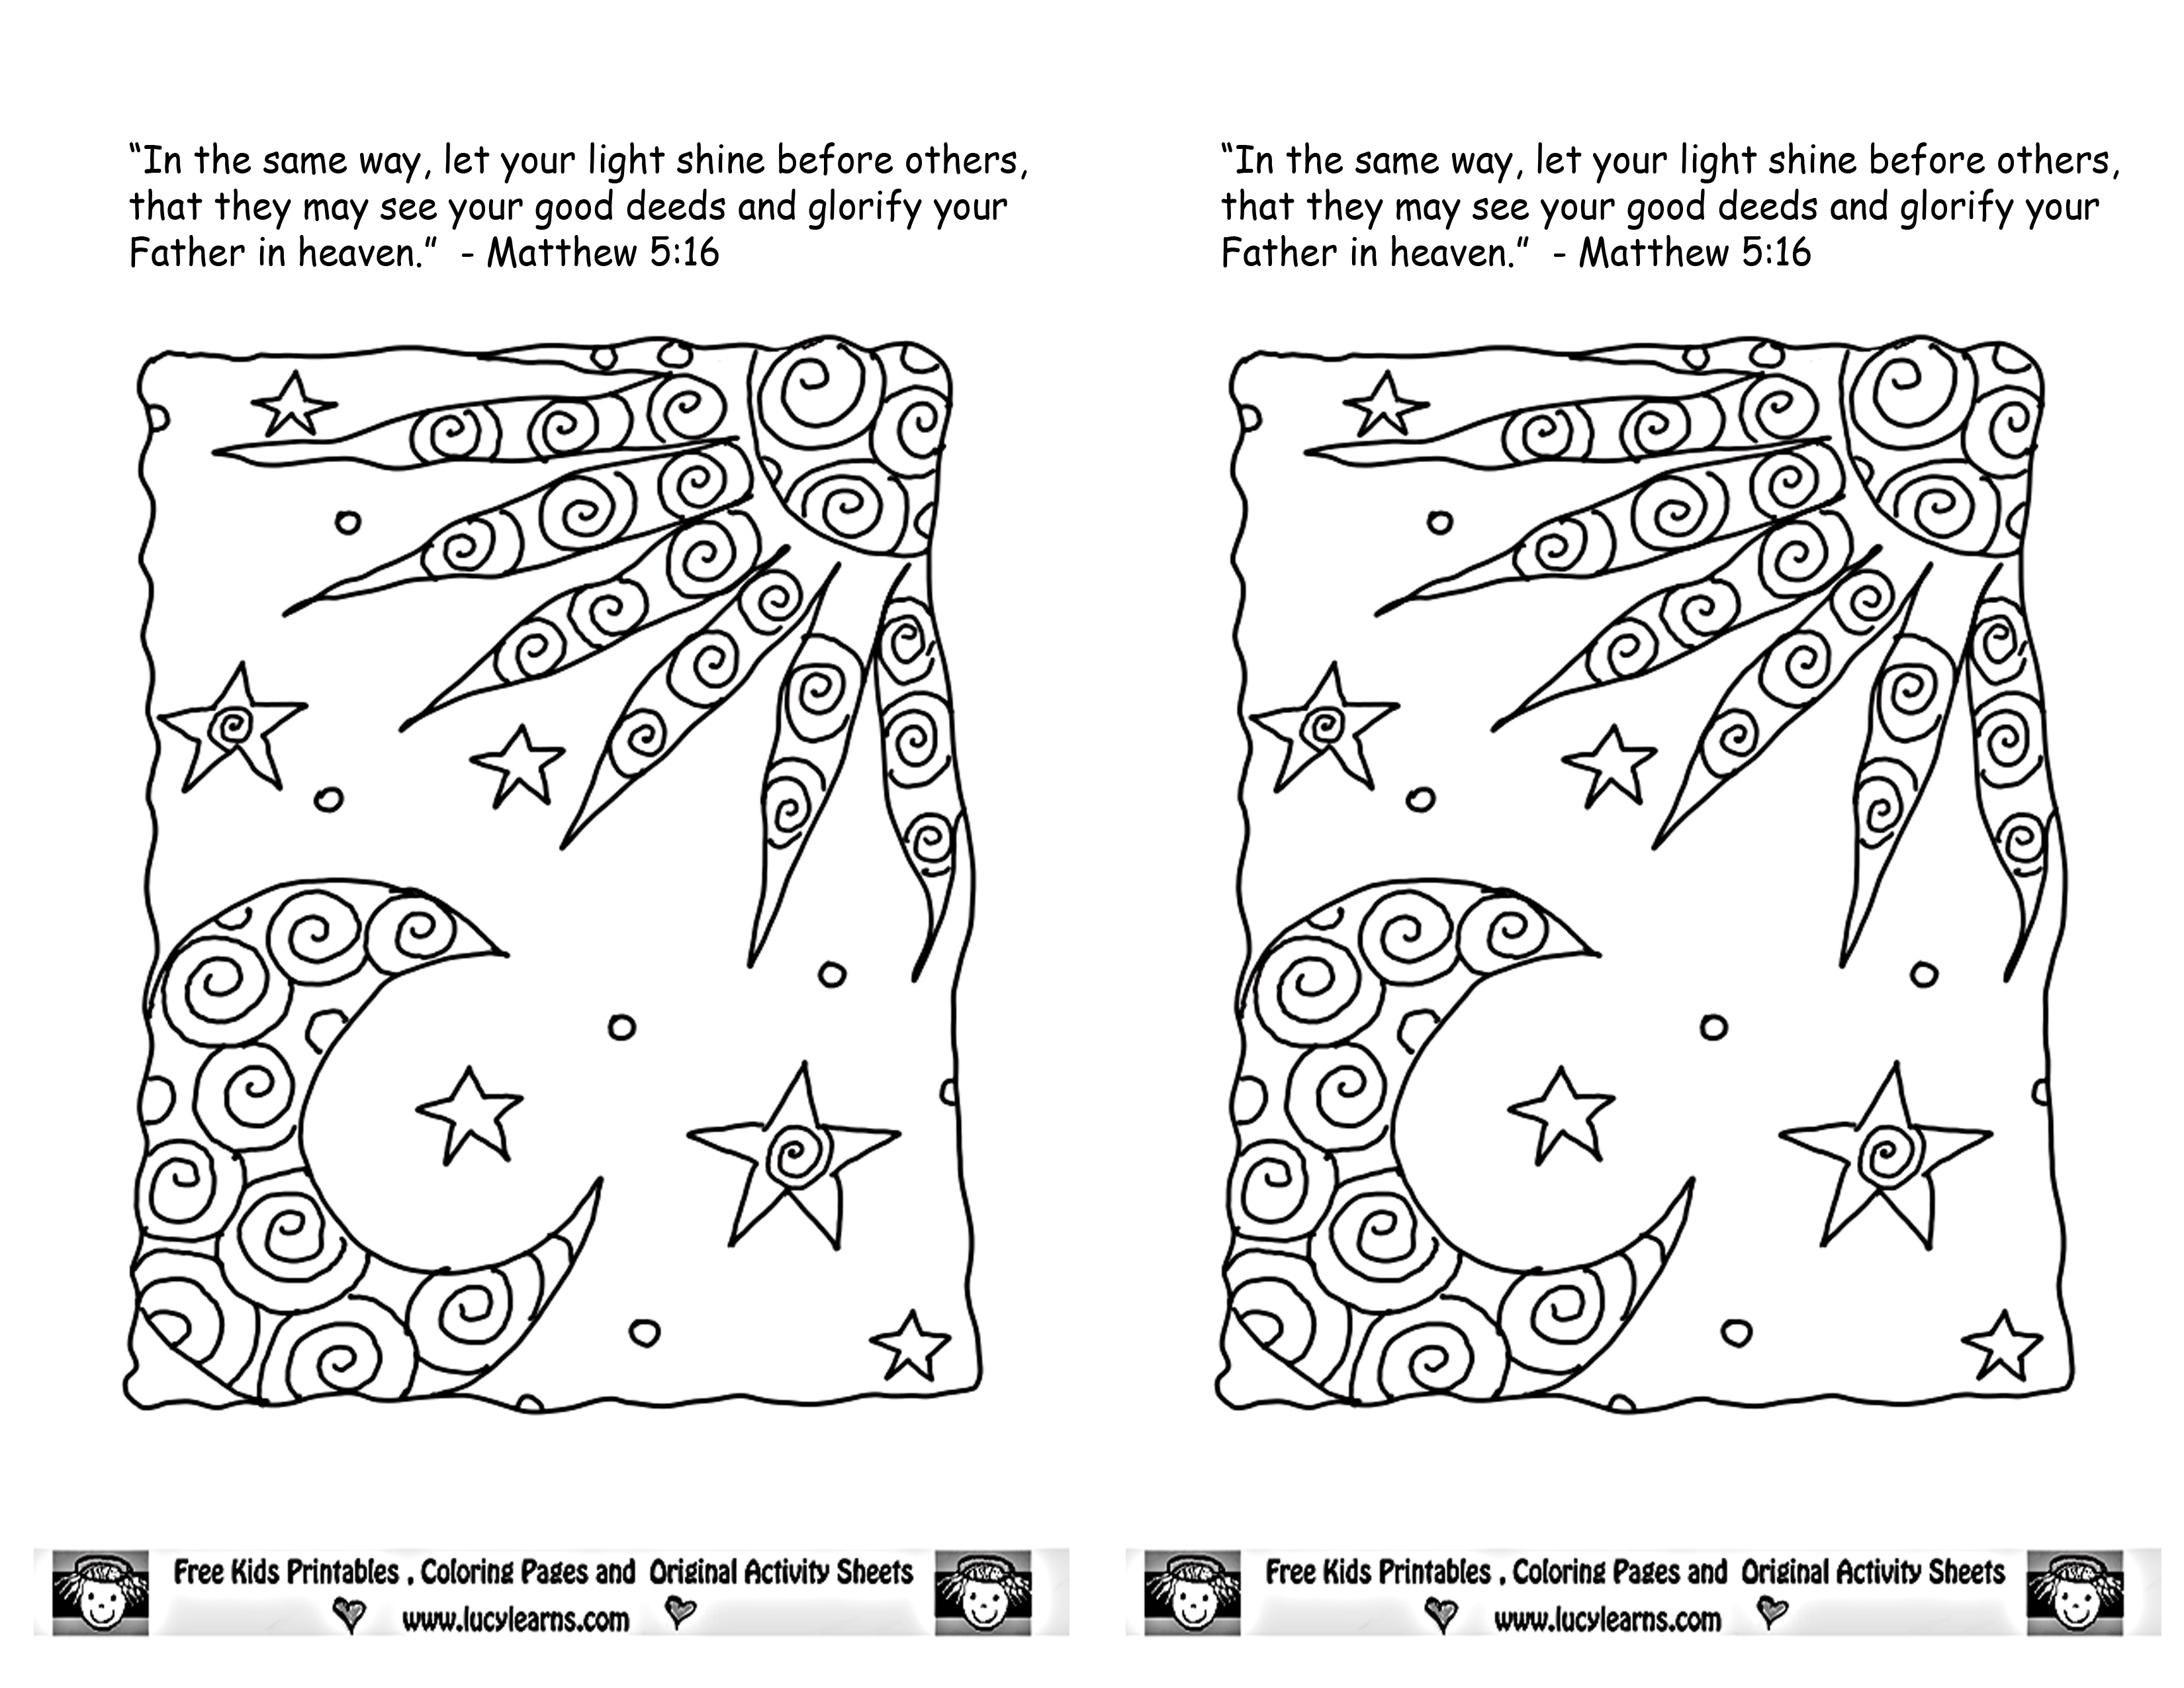 Coloring pages 6 days of creation - Coloring Pages 6 Days Of Creation Bible Coloring Pages Fearfully And Wonderfully Made Page 2 Download